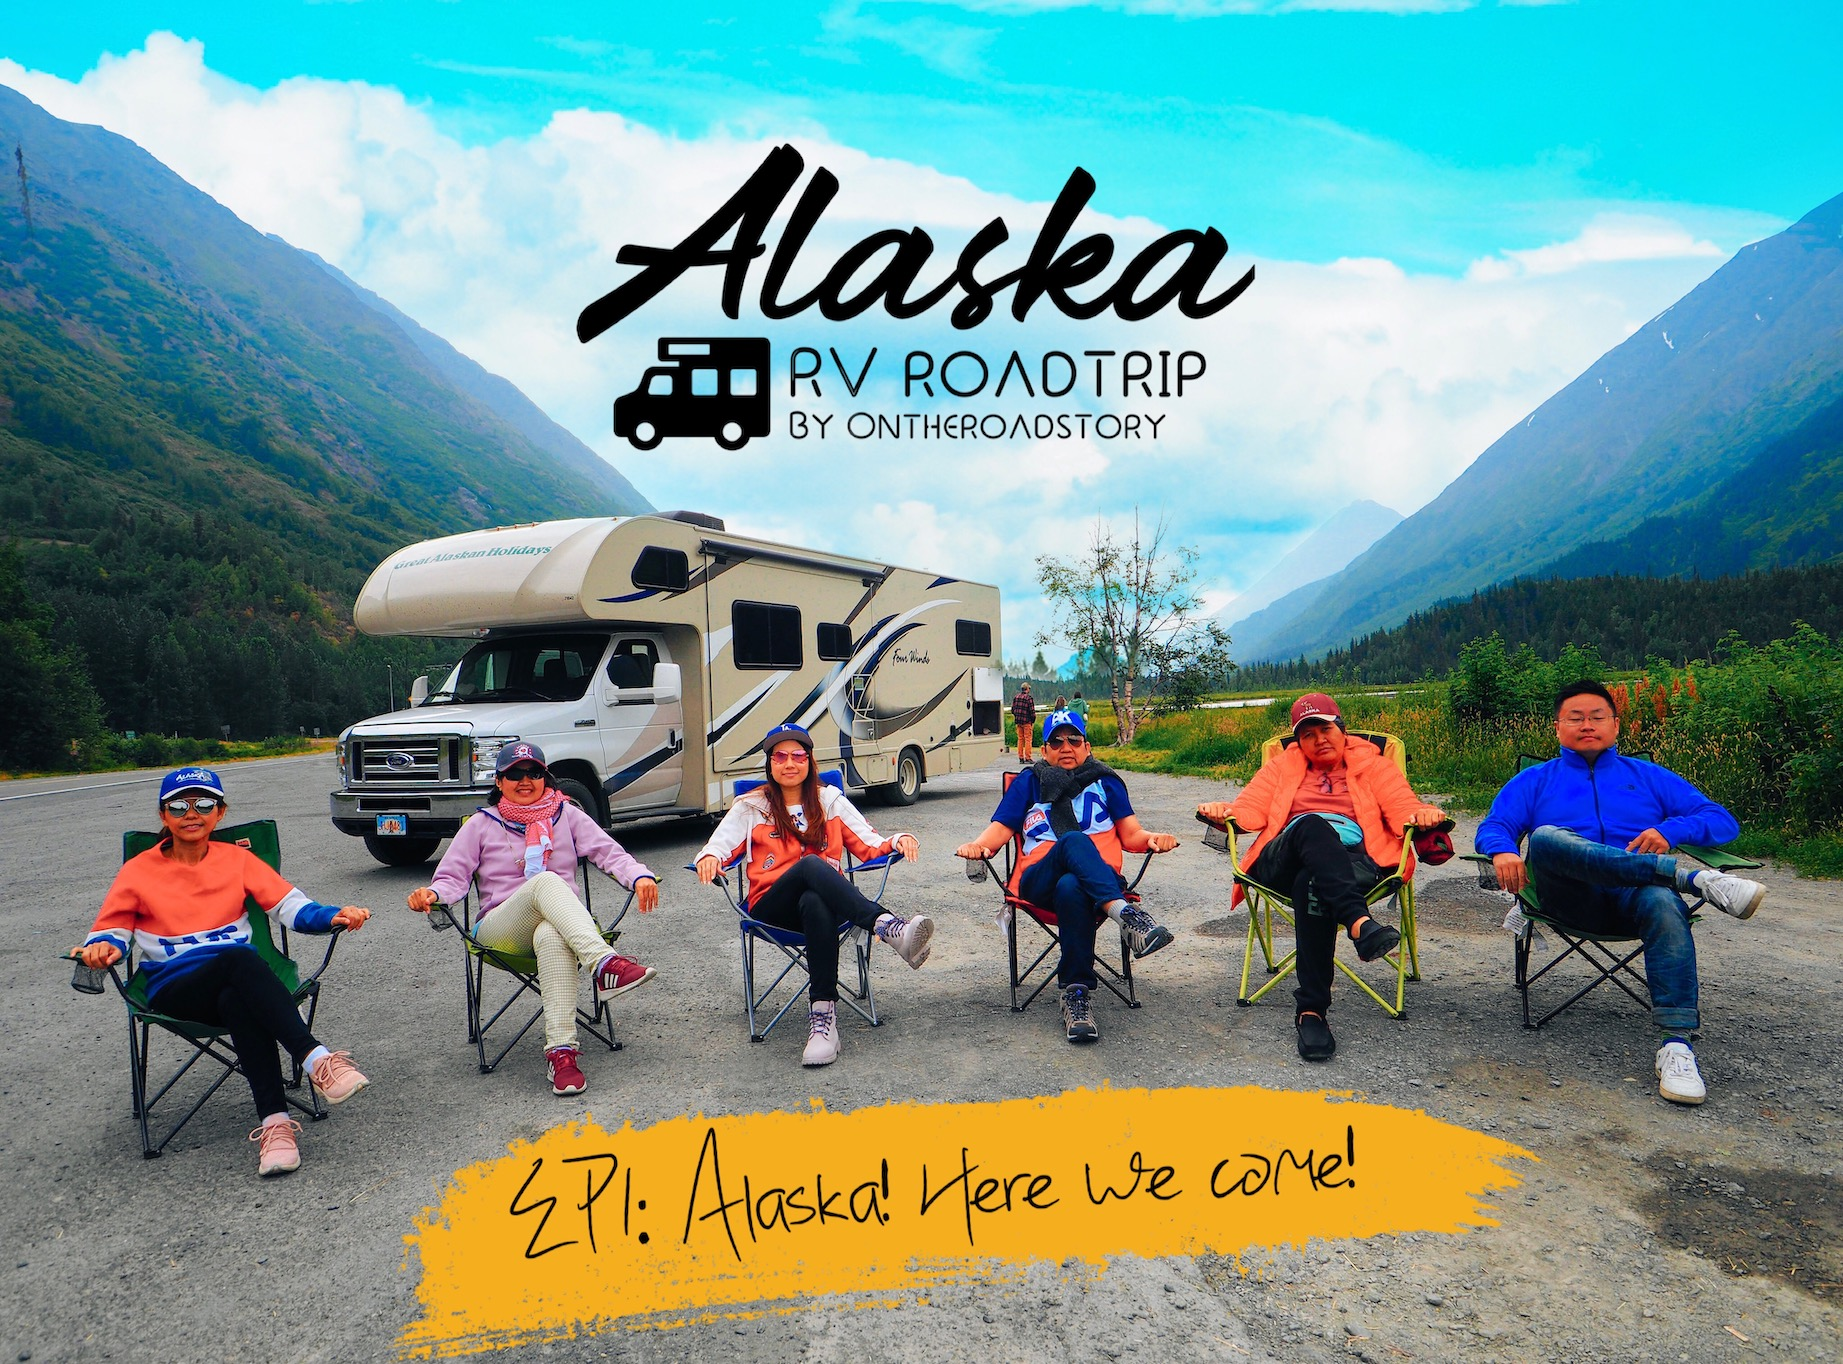 Alaska RV Road Trip : EP2 More than a mountain